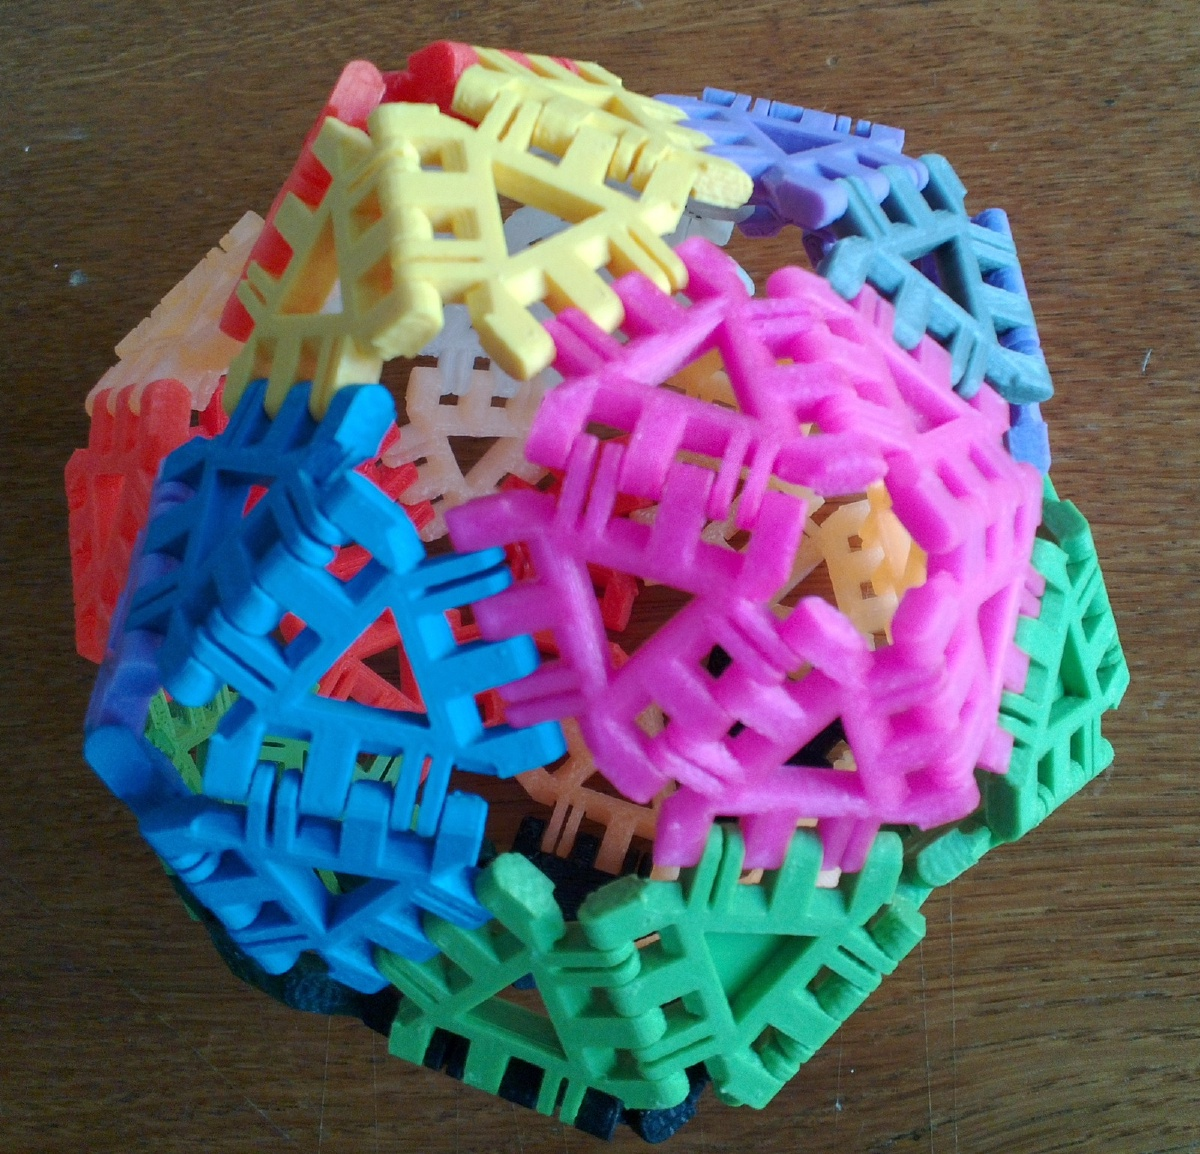 Augmented Dodecahedron